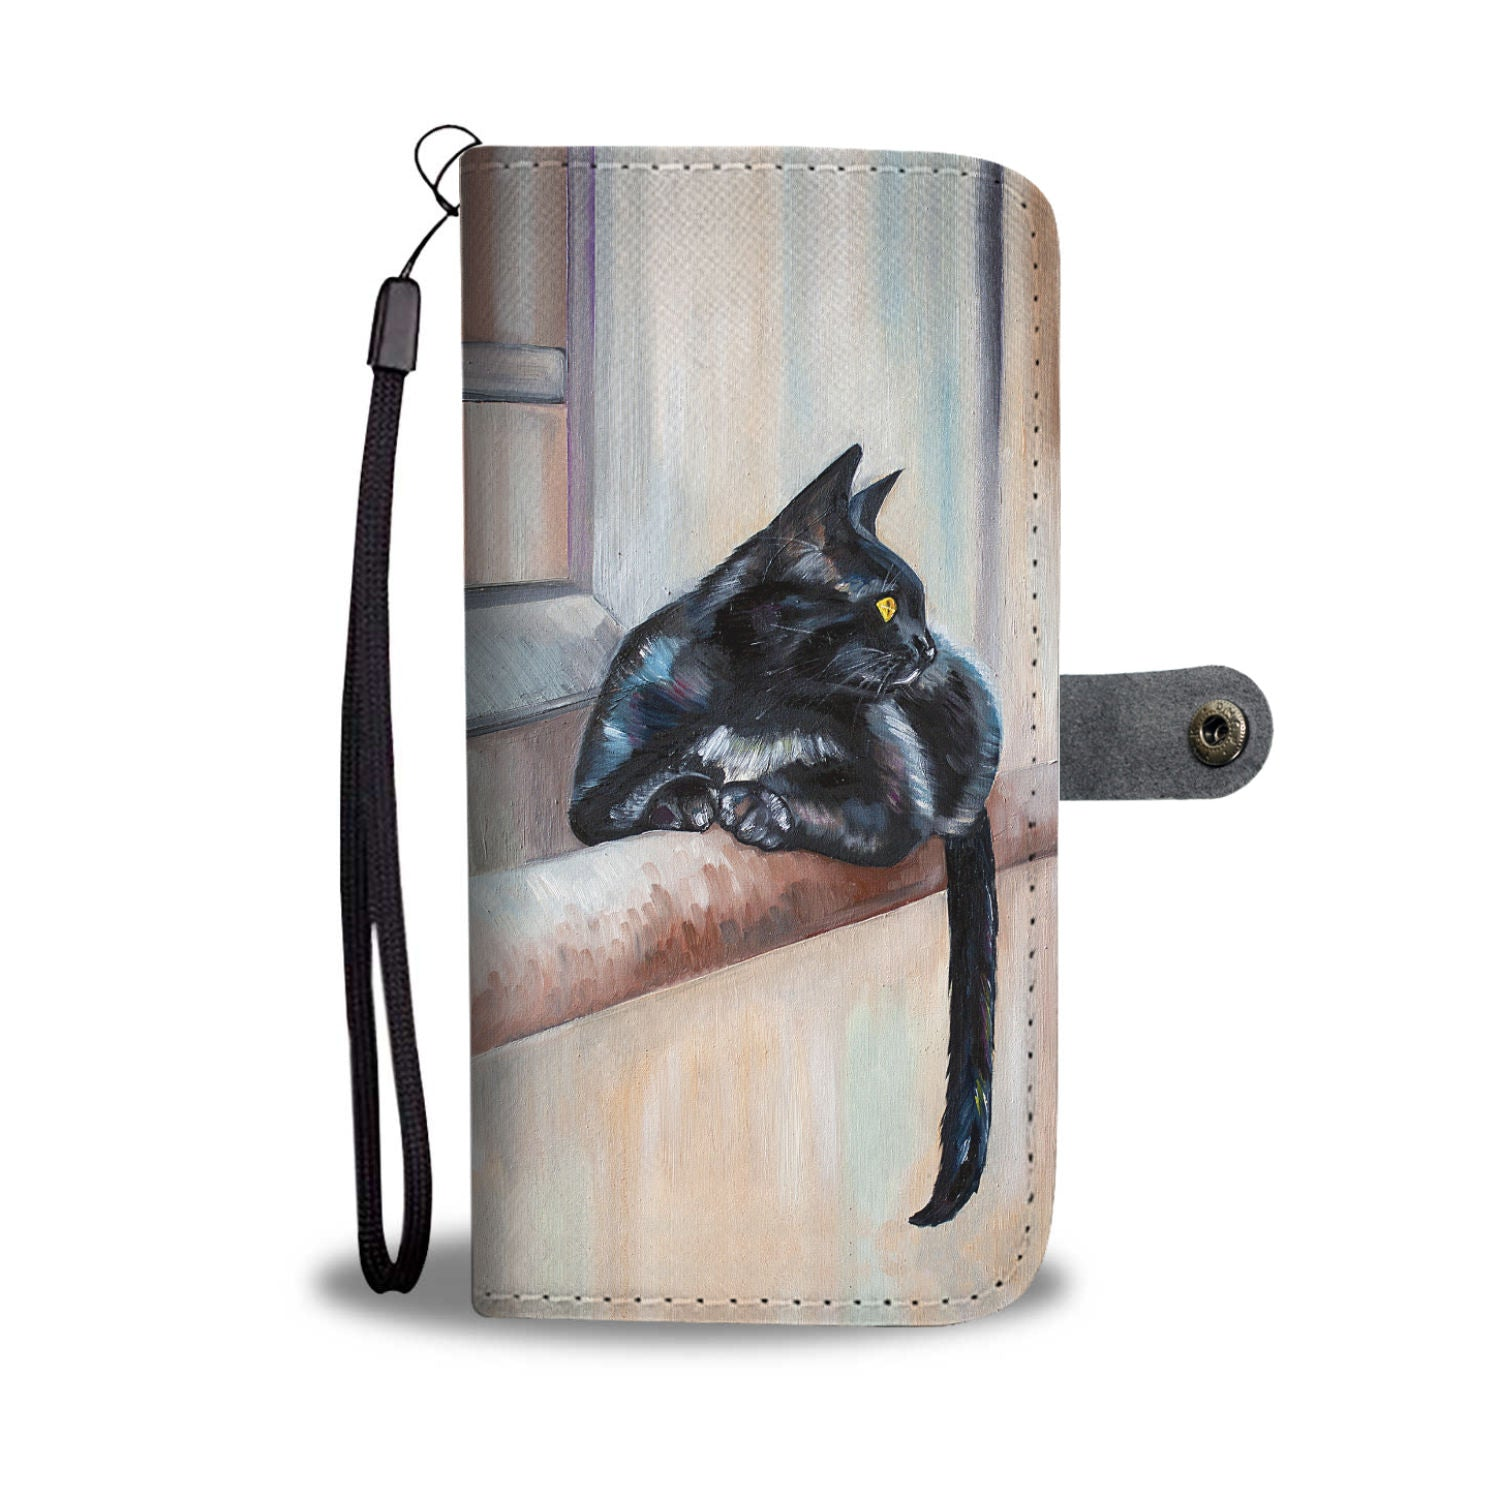 Cat On Ledge Phone Wallet - Hello Moa